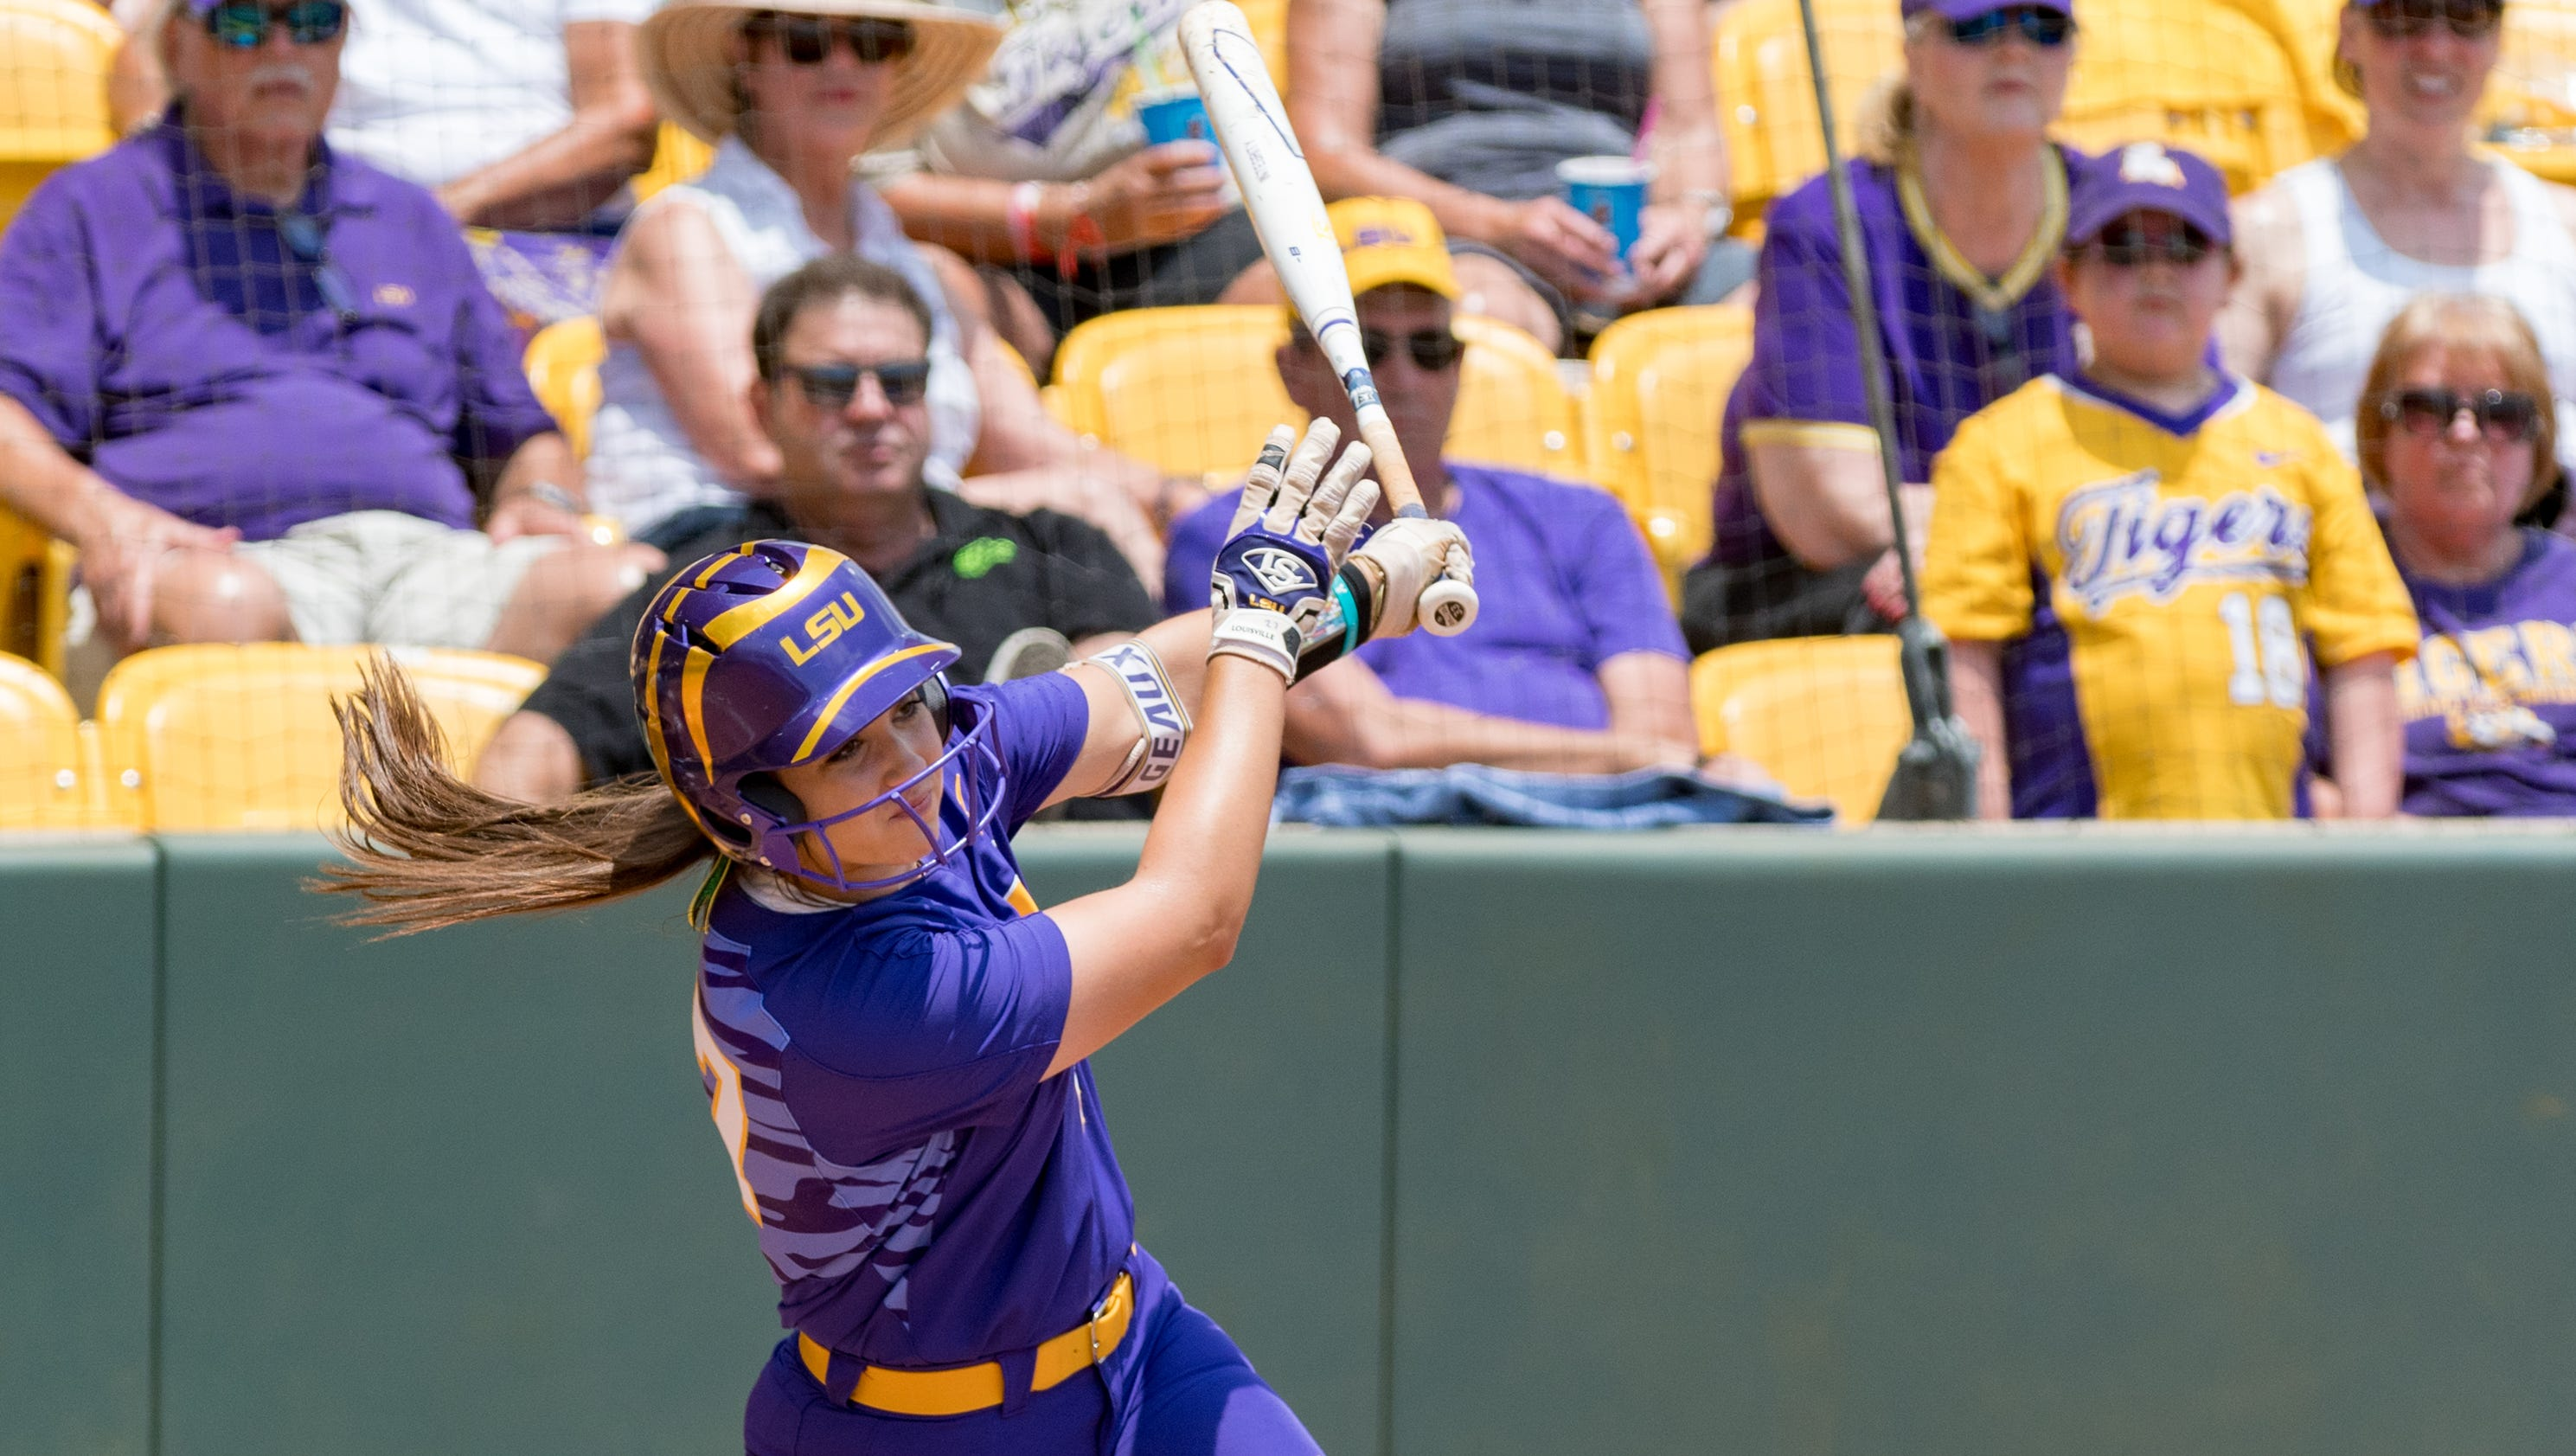 636623378244468059-lsu-shelbi.sunseri.houston.ncaa.tourn-05.19-4756